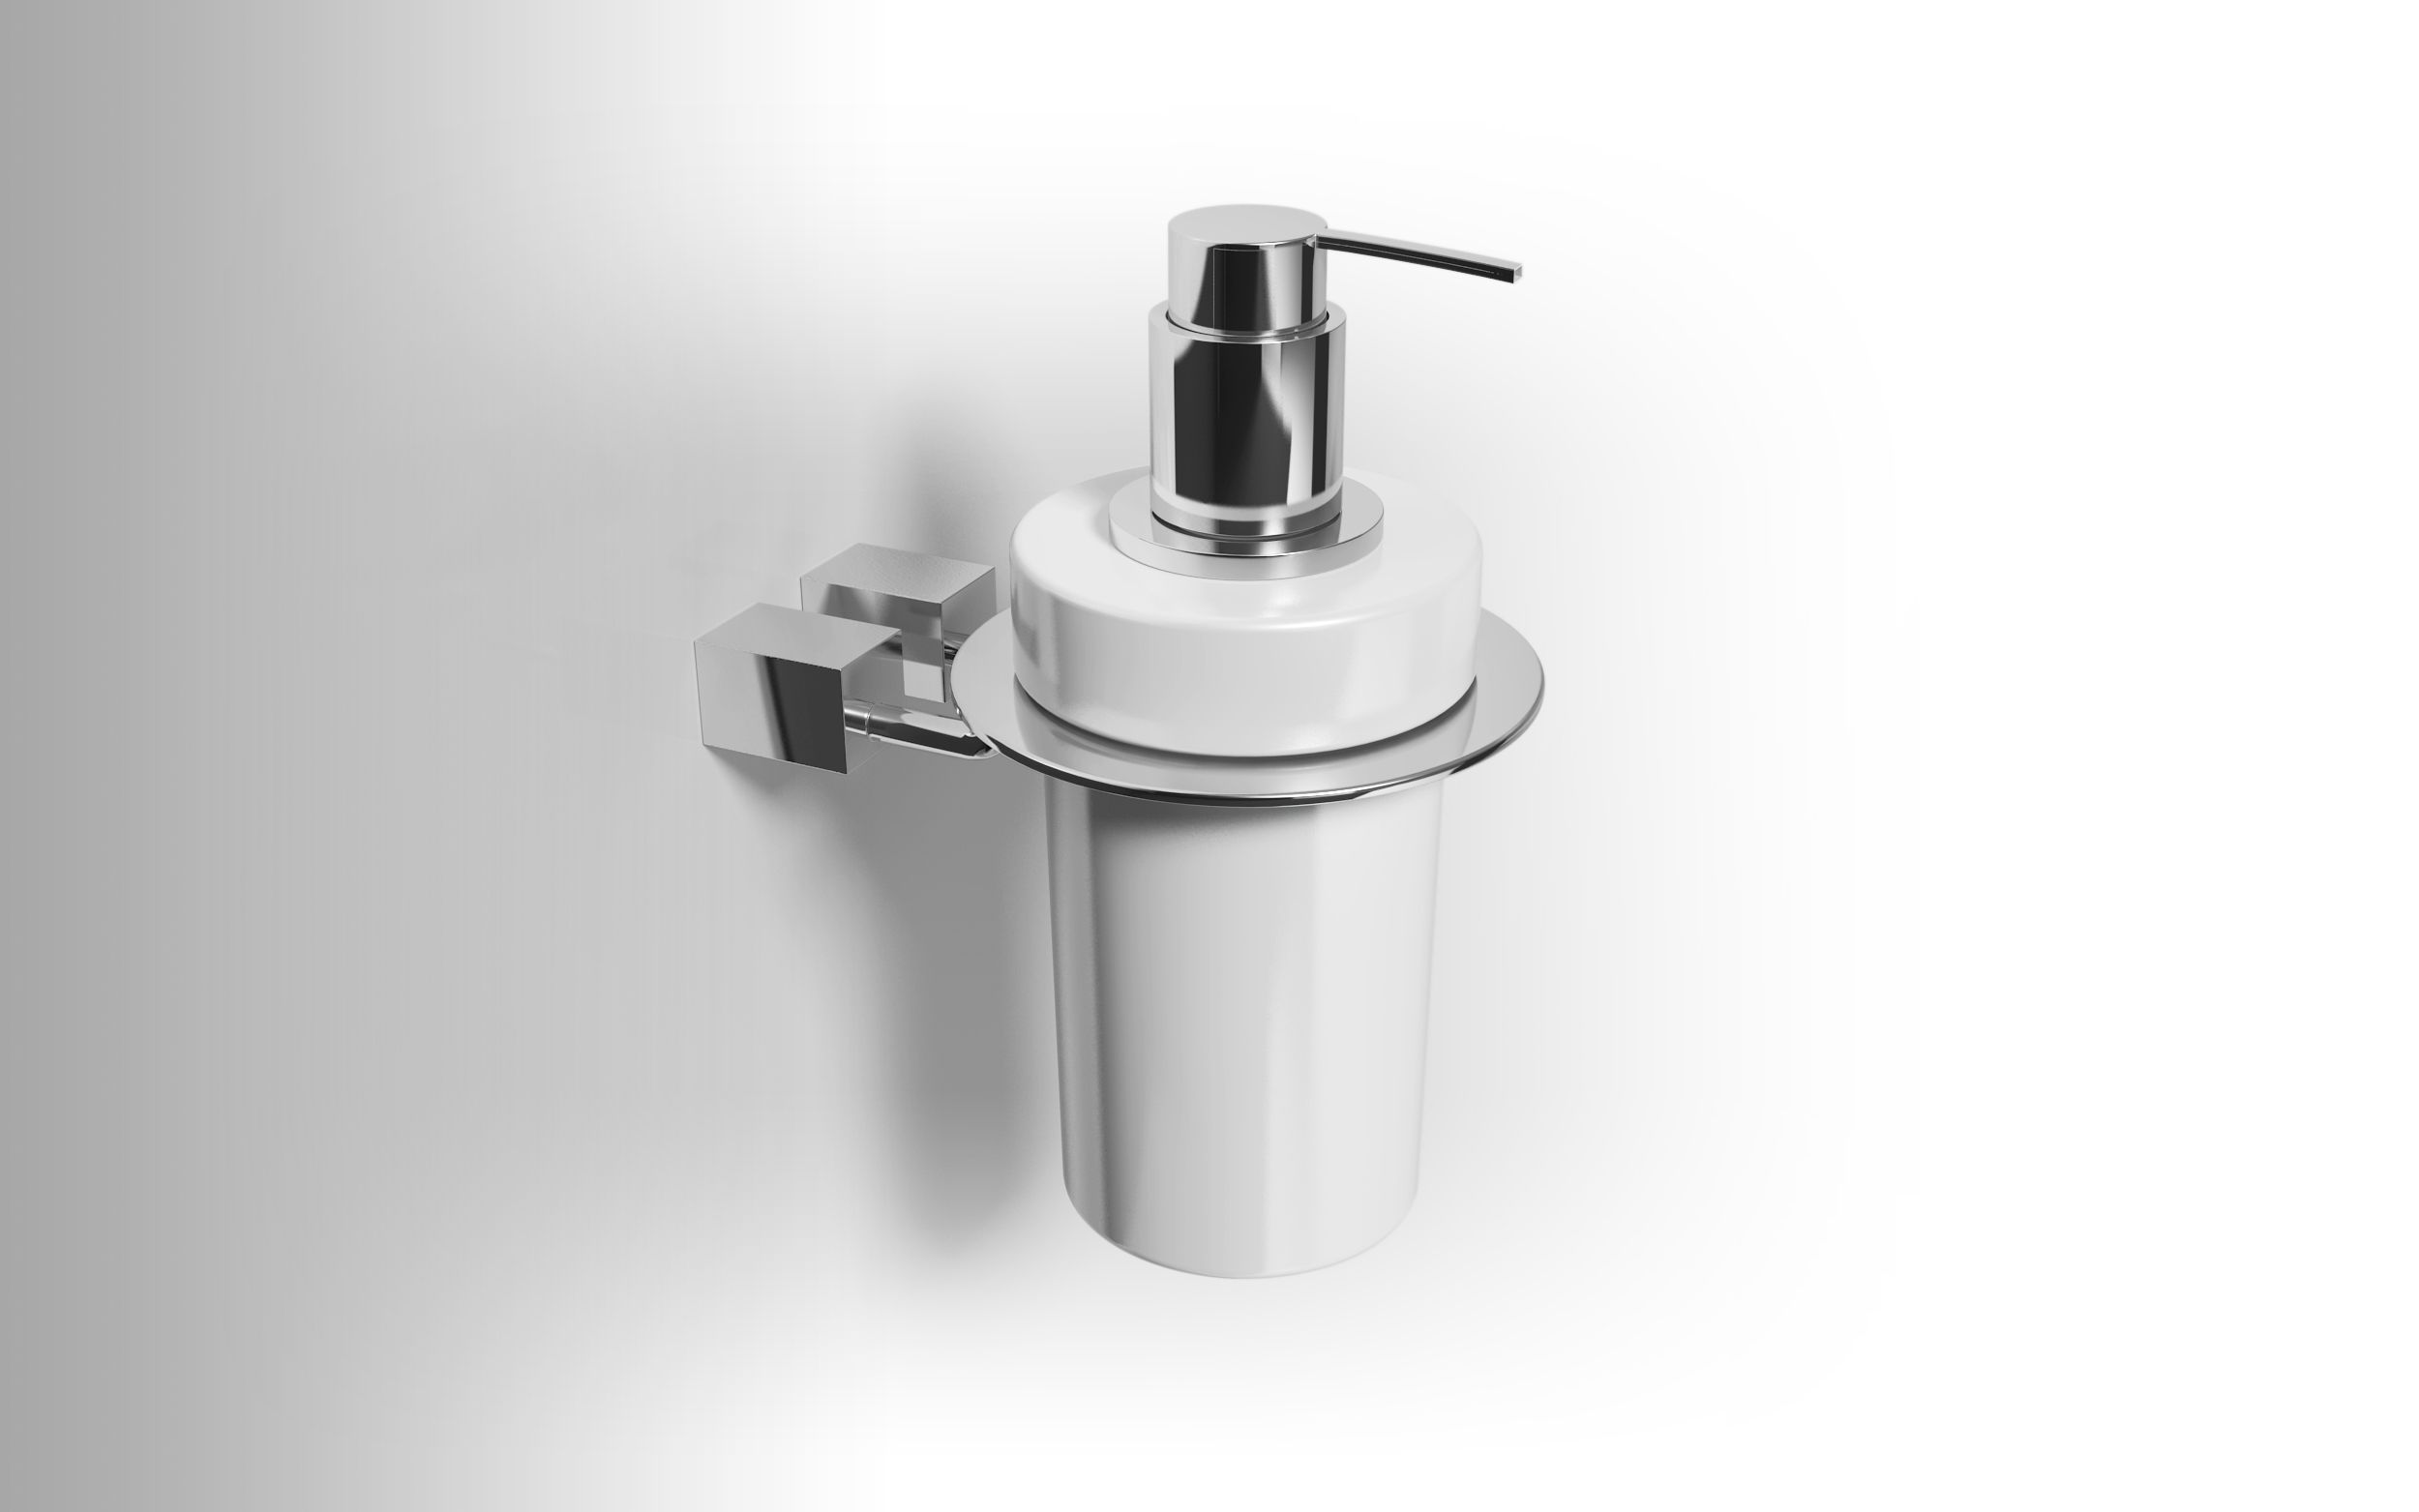 DATURA - Chrome plated brass soap dispenser holder with ceramic soap ...